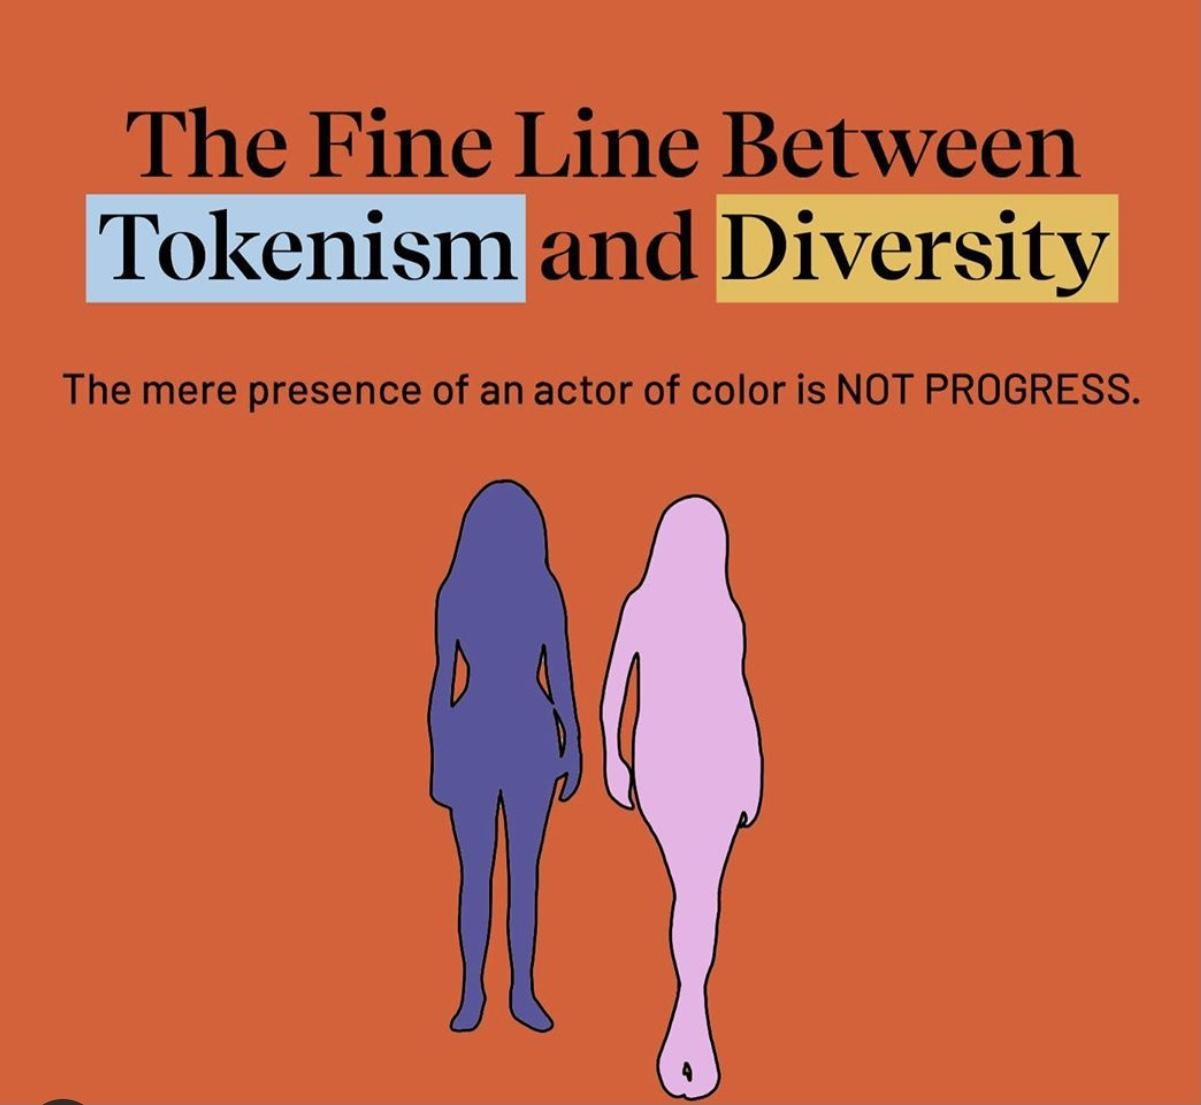 """This image has an orange background with the words: """" The fine line between tokensim and diversity. The mere presence of an actor of color is not progress"""""""